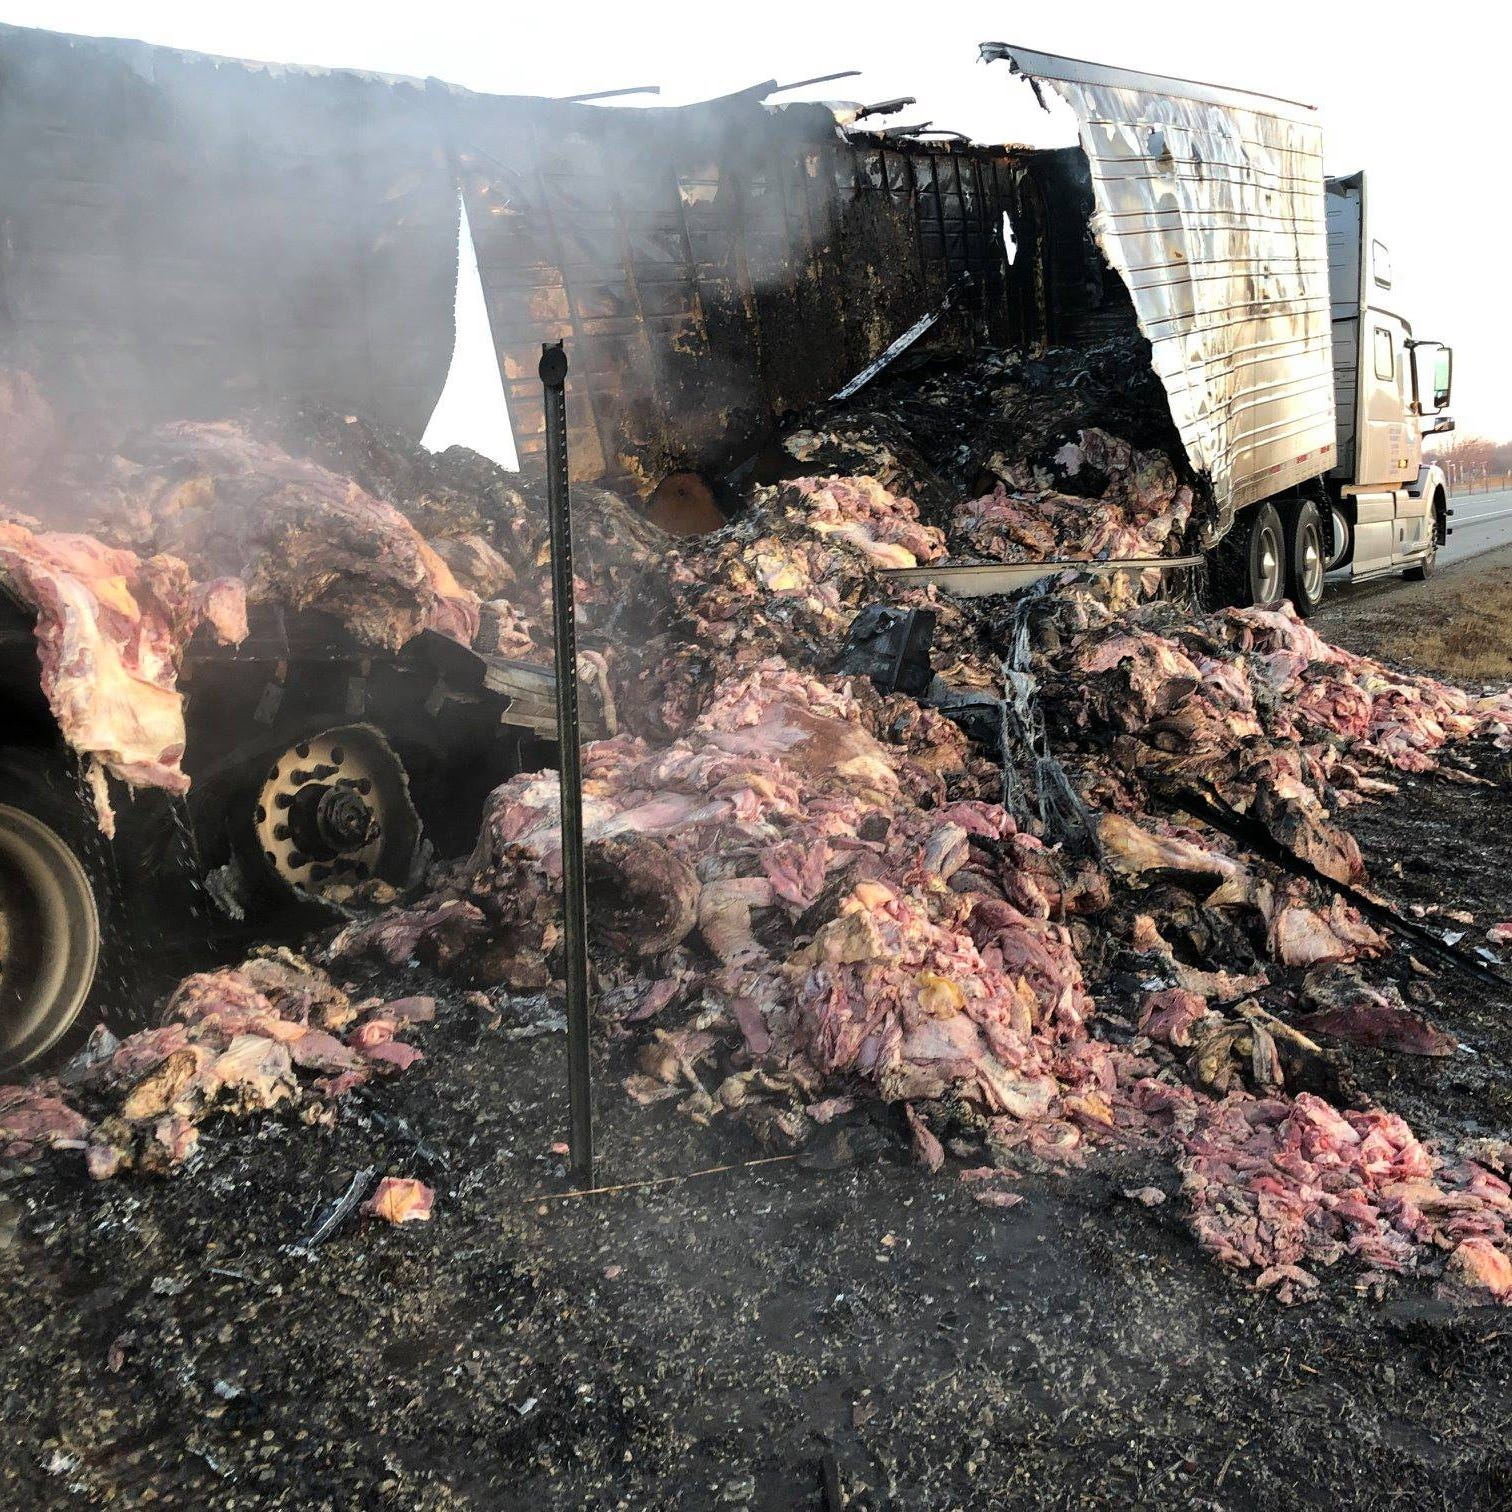 Semi-truck hauling 41,000 lbs of meat catches fire on Interstate 41 near Appleton